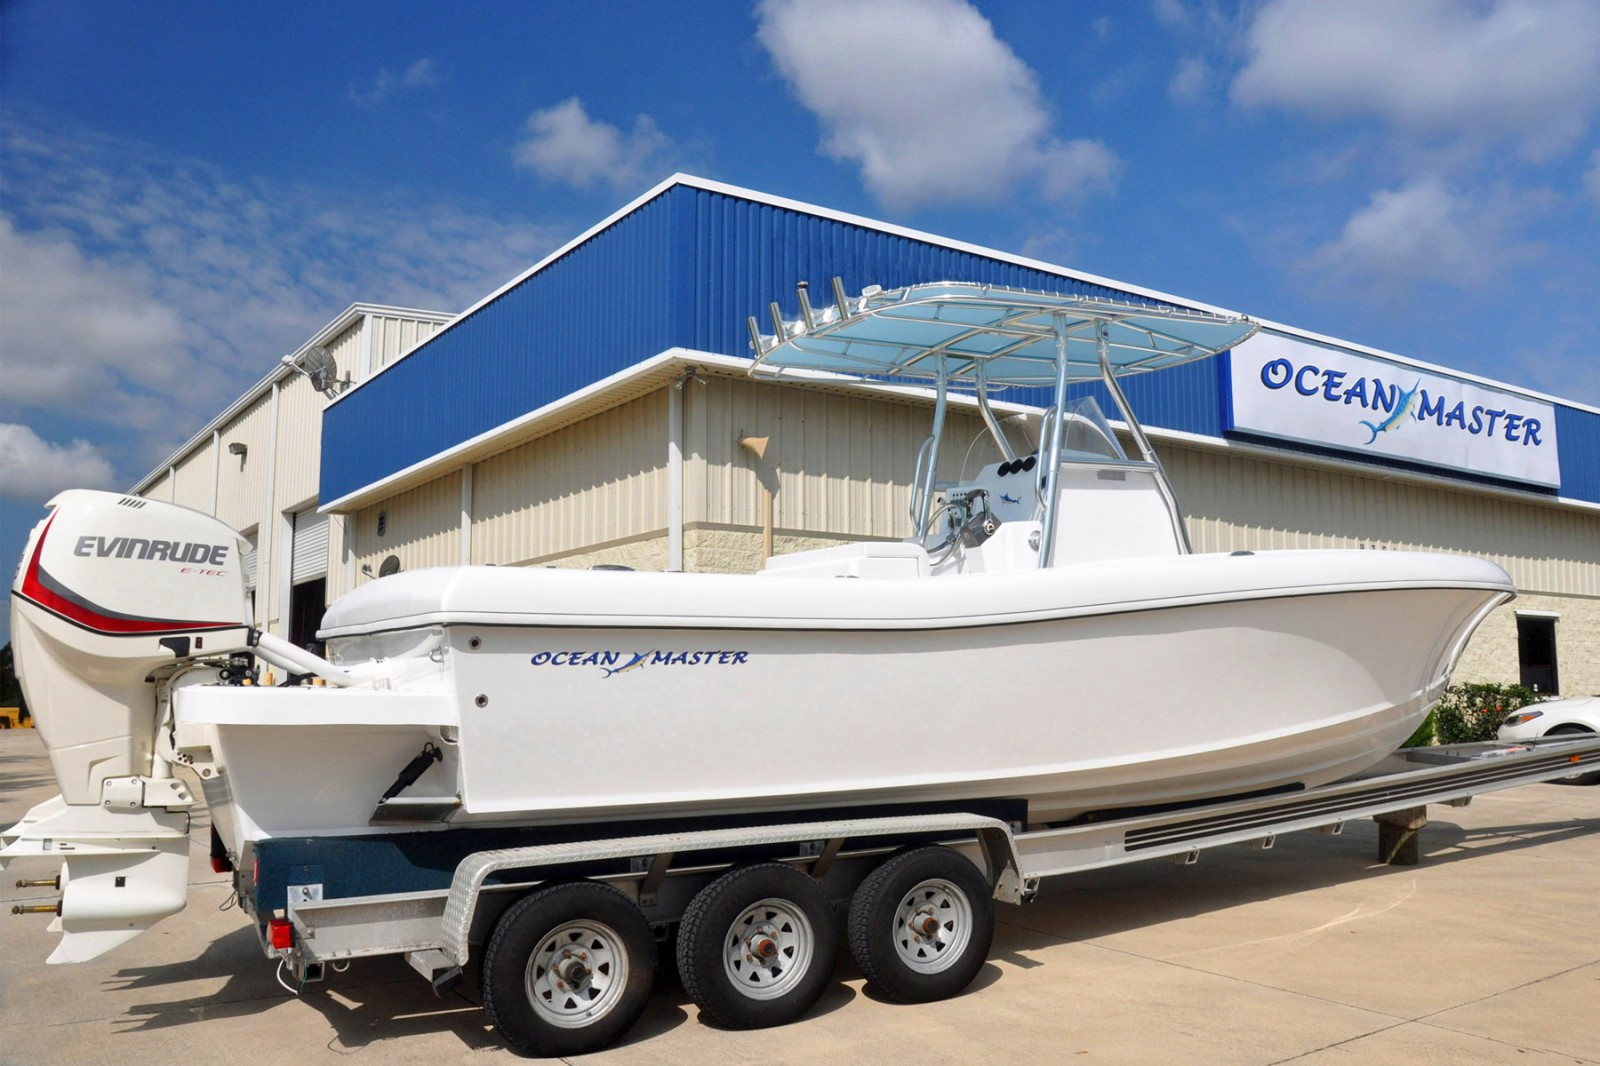 Ocean Master relocates headquarters from West Palm Beach to Stuart, Fla.